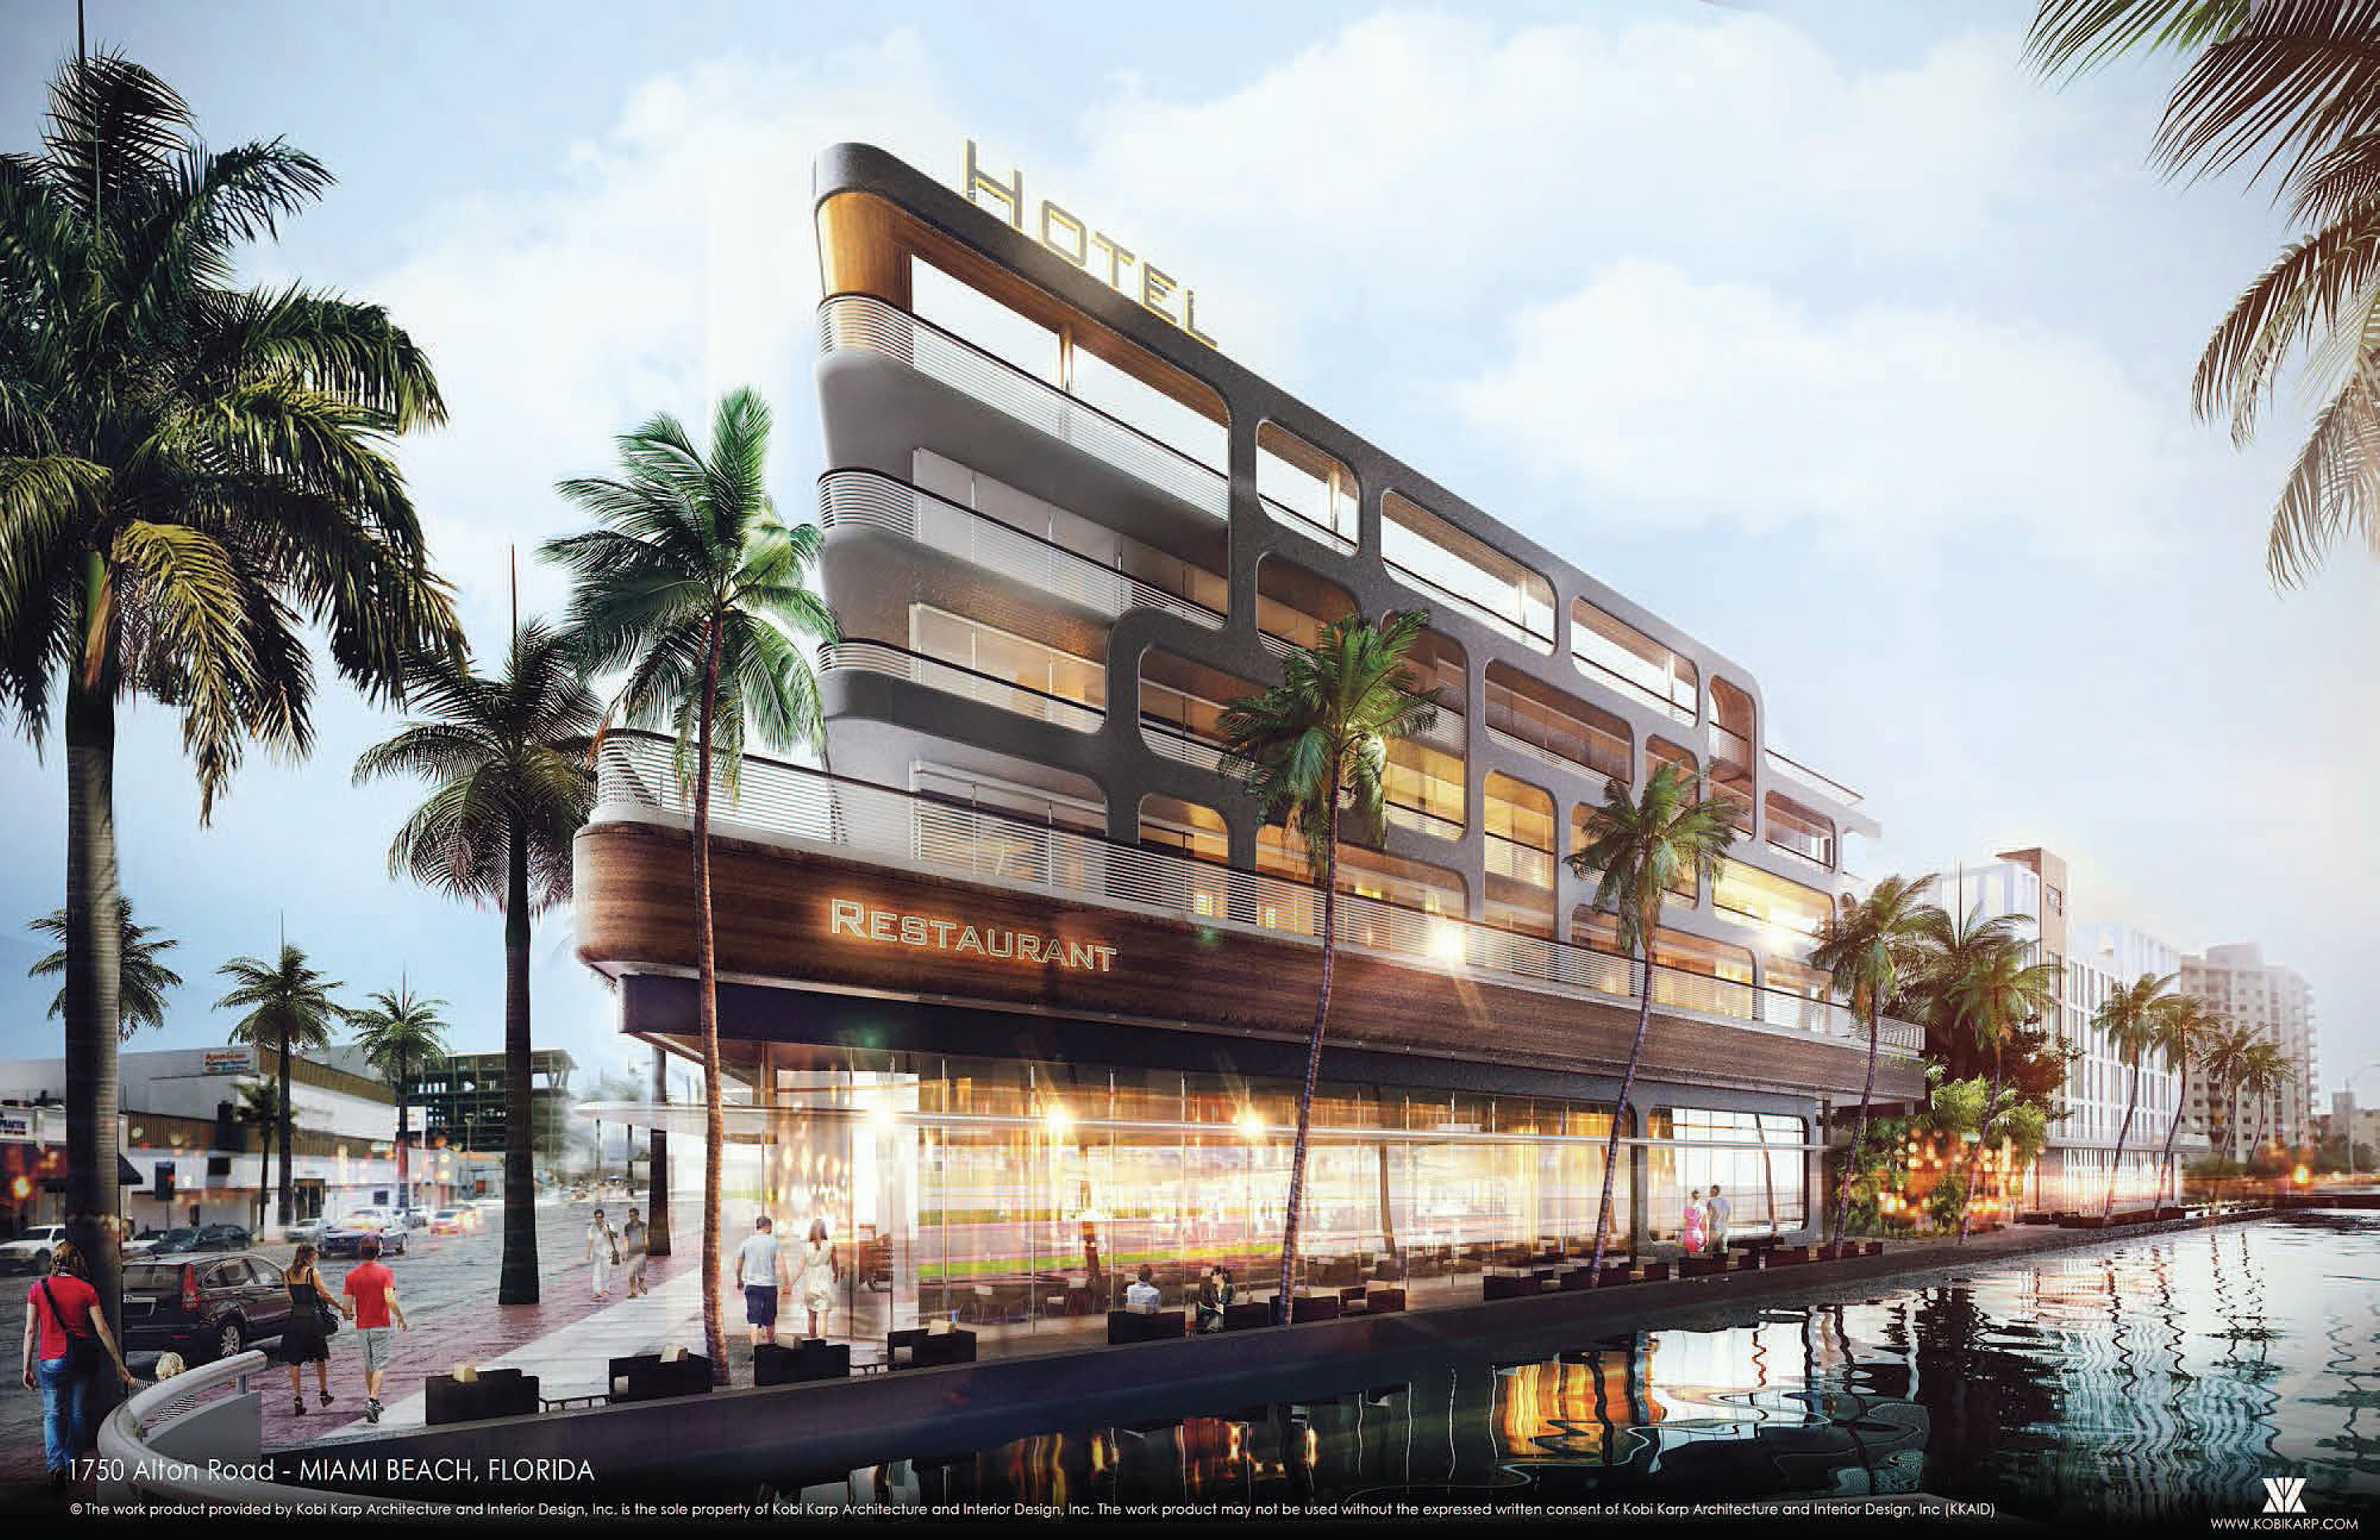 South Beach Hotels >> Kimpton Hotels Restaurants Reveals Plans For New South Beach Hotel